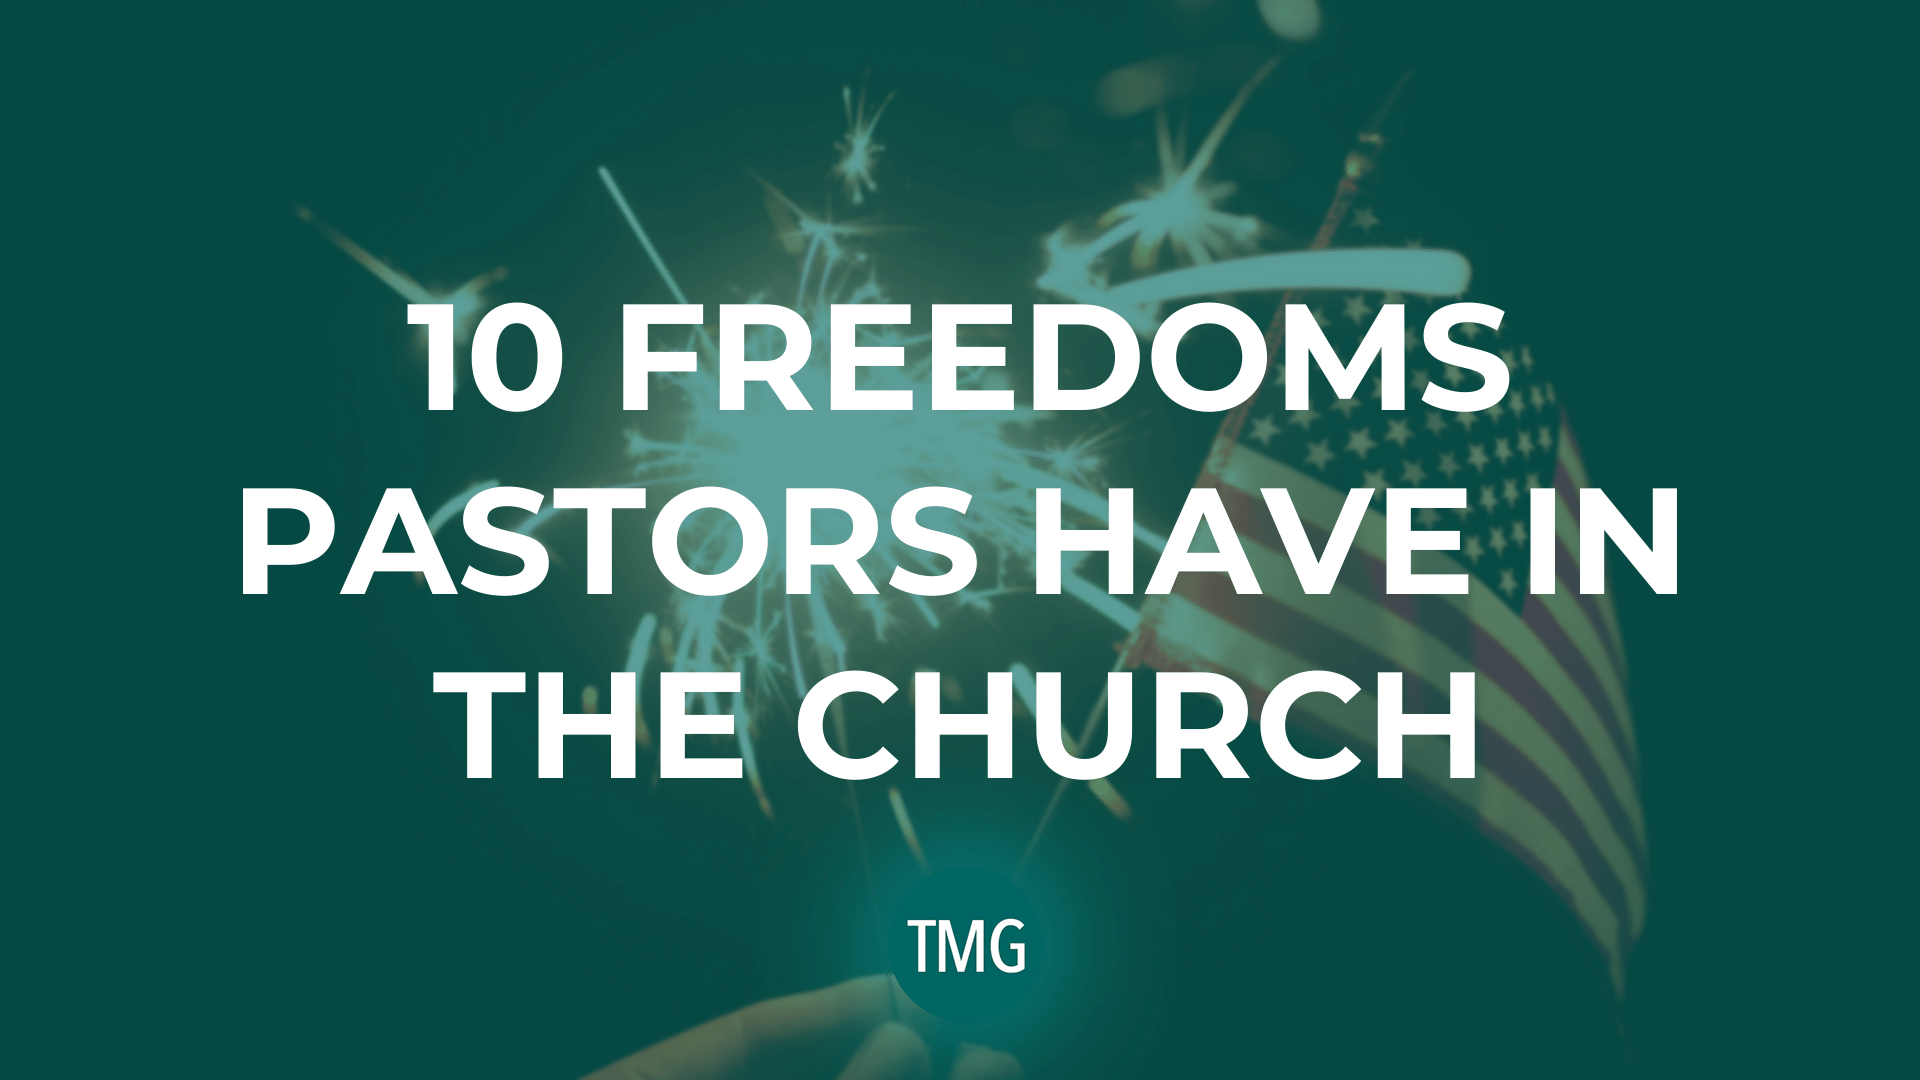 10-ten-freedoms-pastors-have-in-the-church-the-malphurs-group-the-church-revitalization-podcast